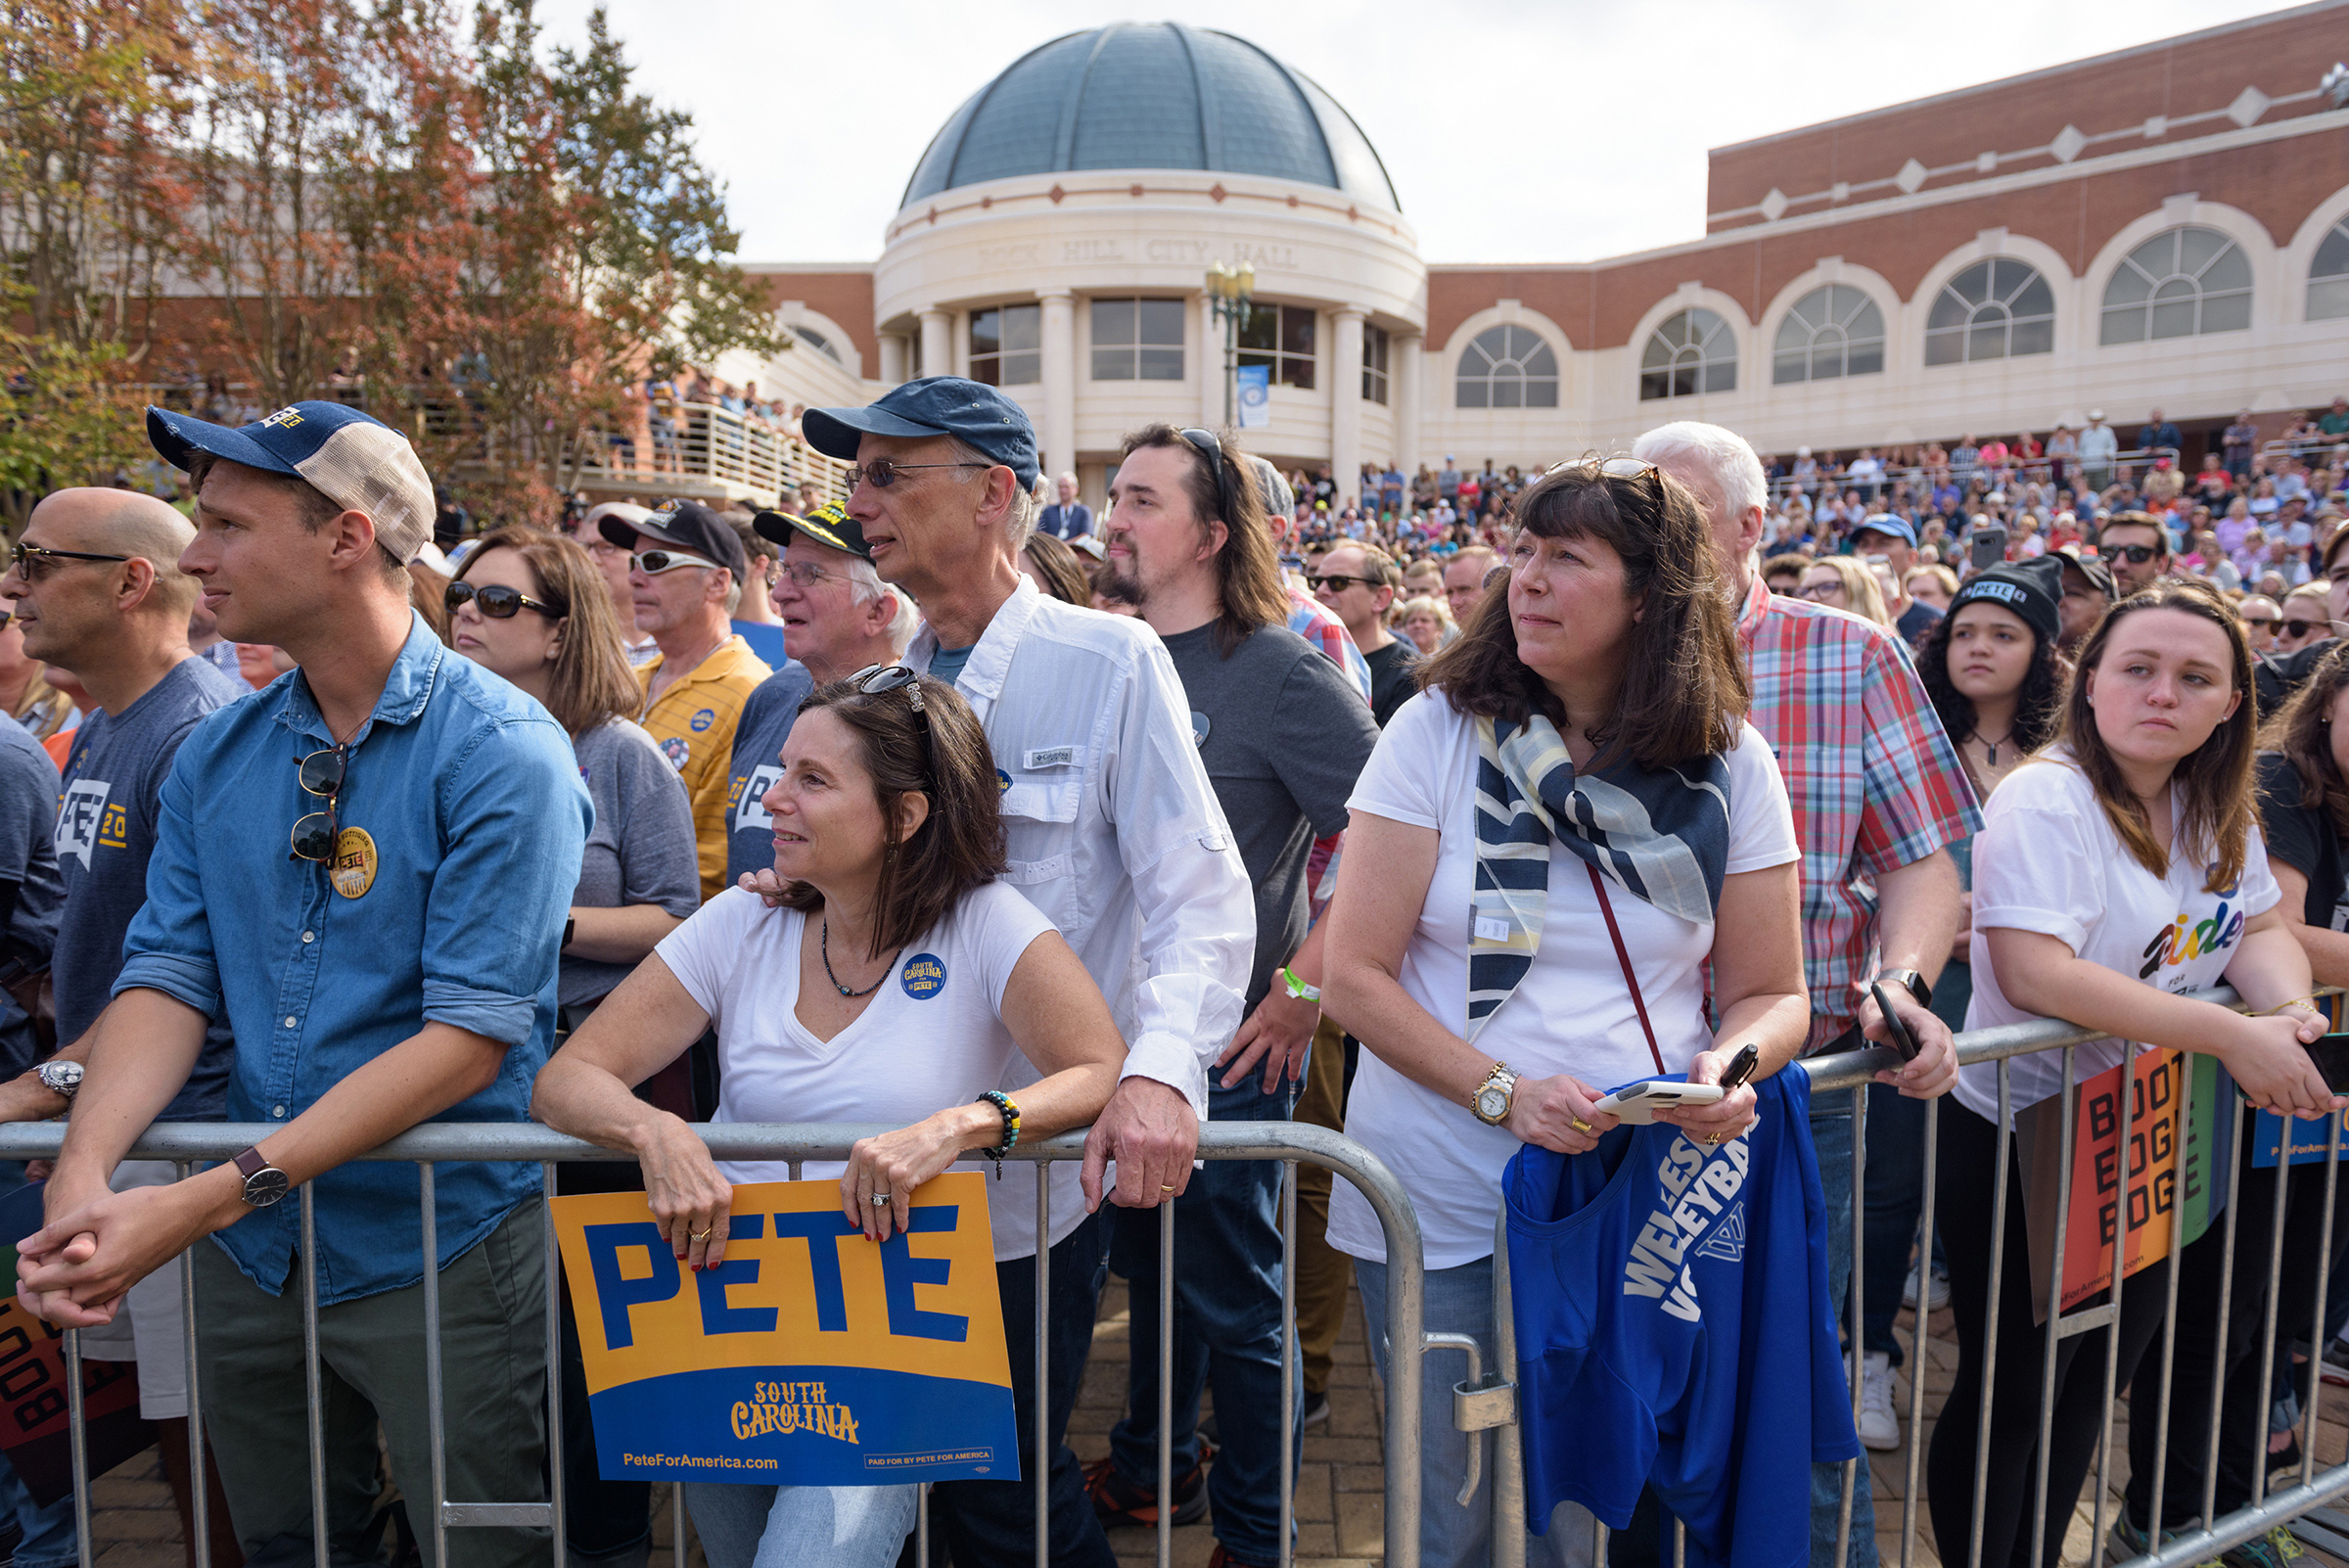 Attendees wait for Mayor Pete Buttigieg of South Bend, Ind., a Democratic presidential hopeful, to arrive at a campaign event in Rock Hill, S.C., on Oct. 26, 2019.